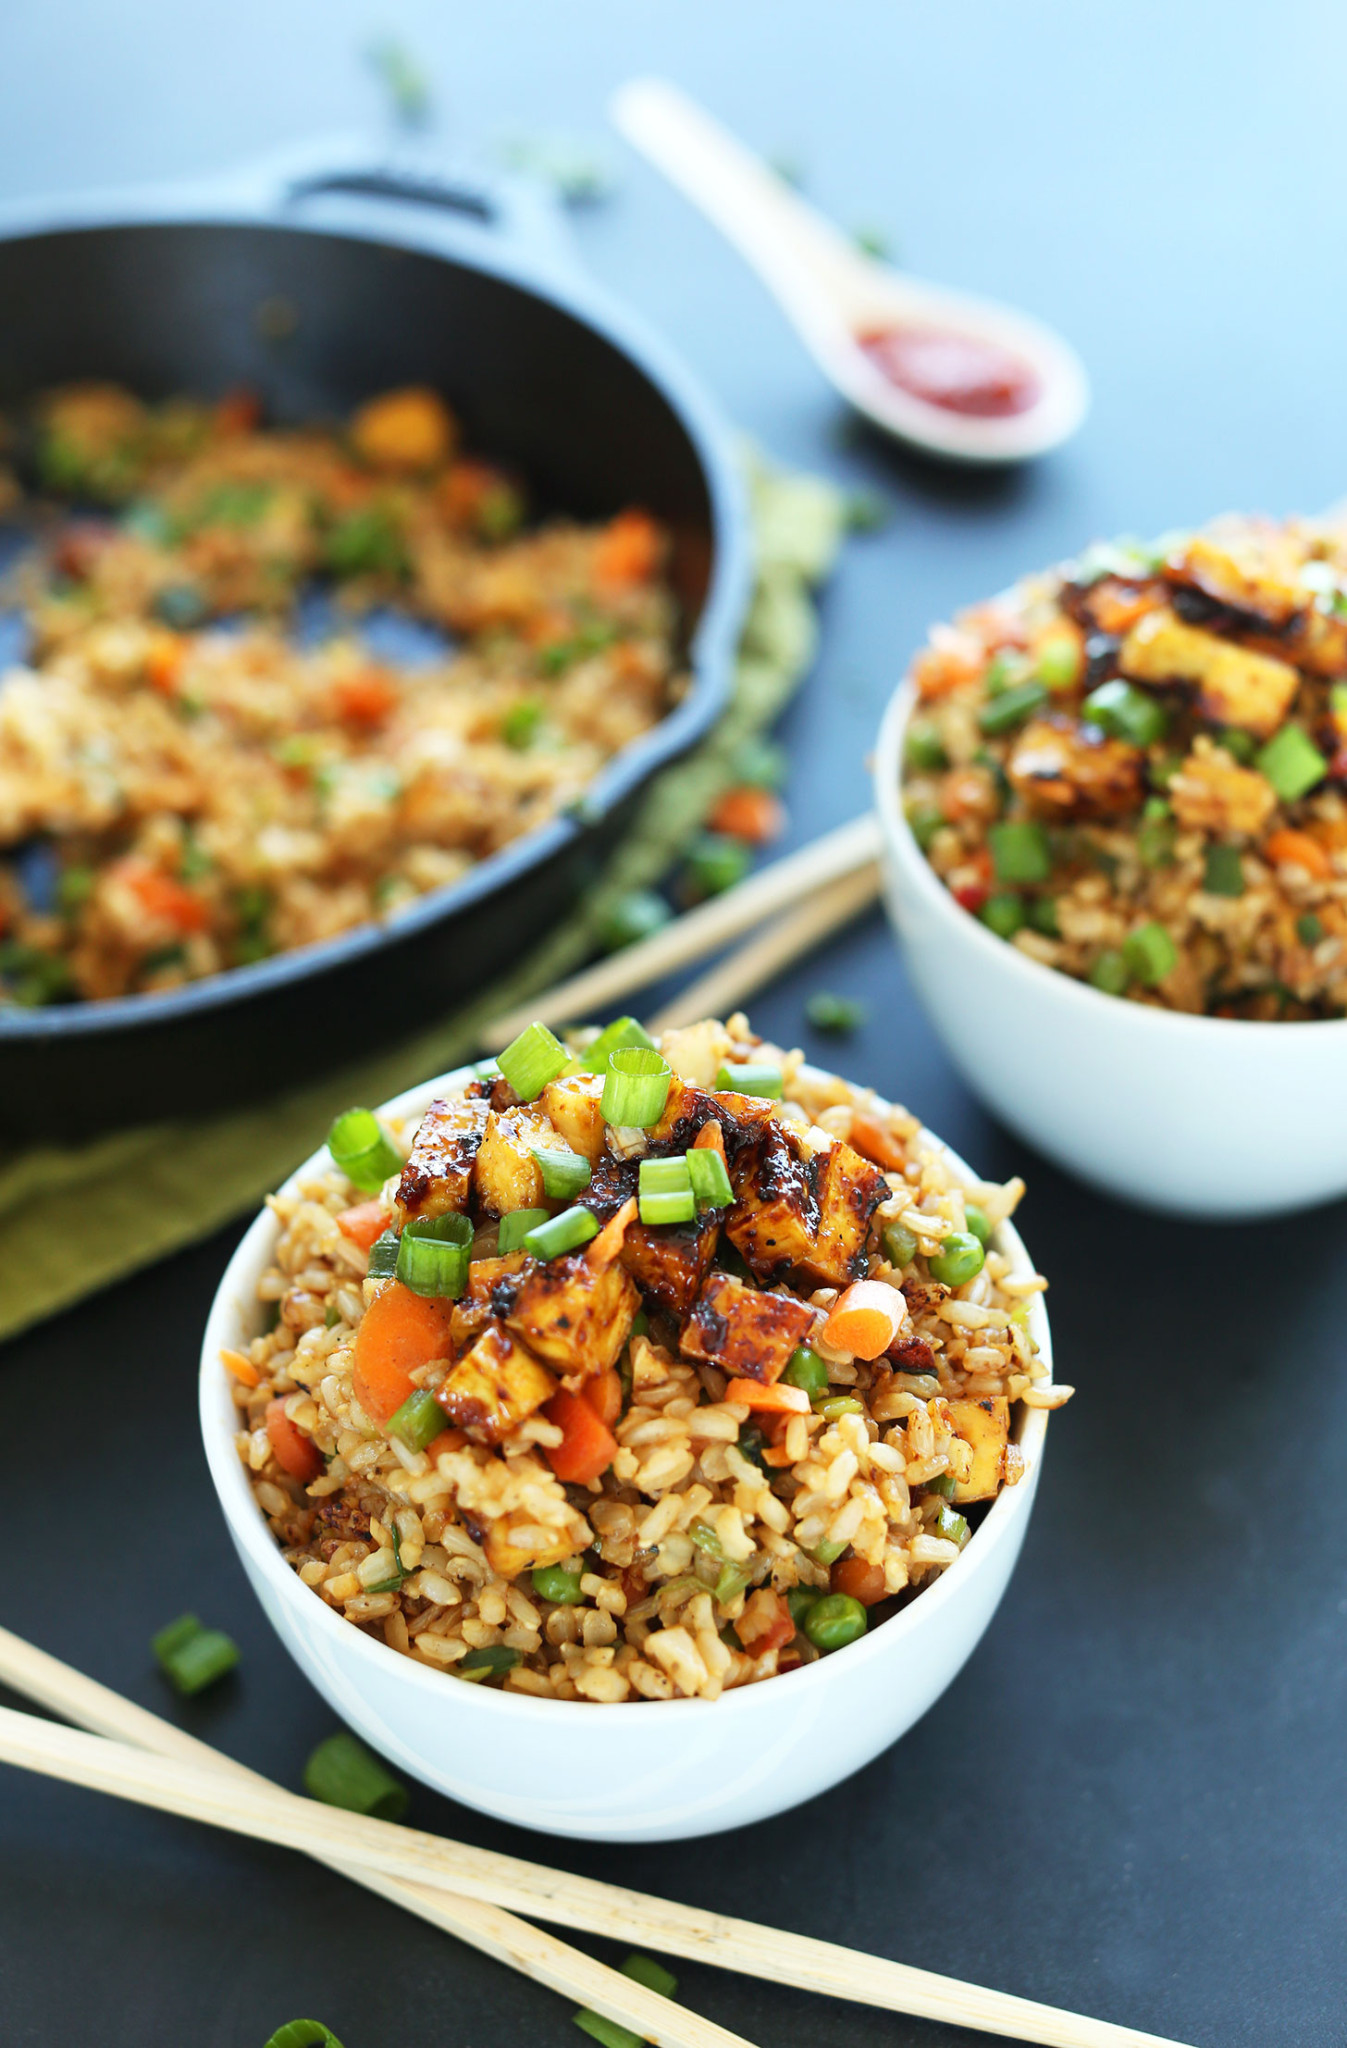 AMAZING-HEALTHY-Vegan-Fried-Rice-with-Crispy-Tofu-vegan-glutenfree-recipe-chinese-friedrice-plantbased-minimalistbaker